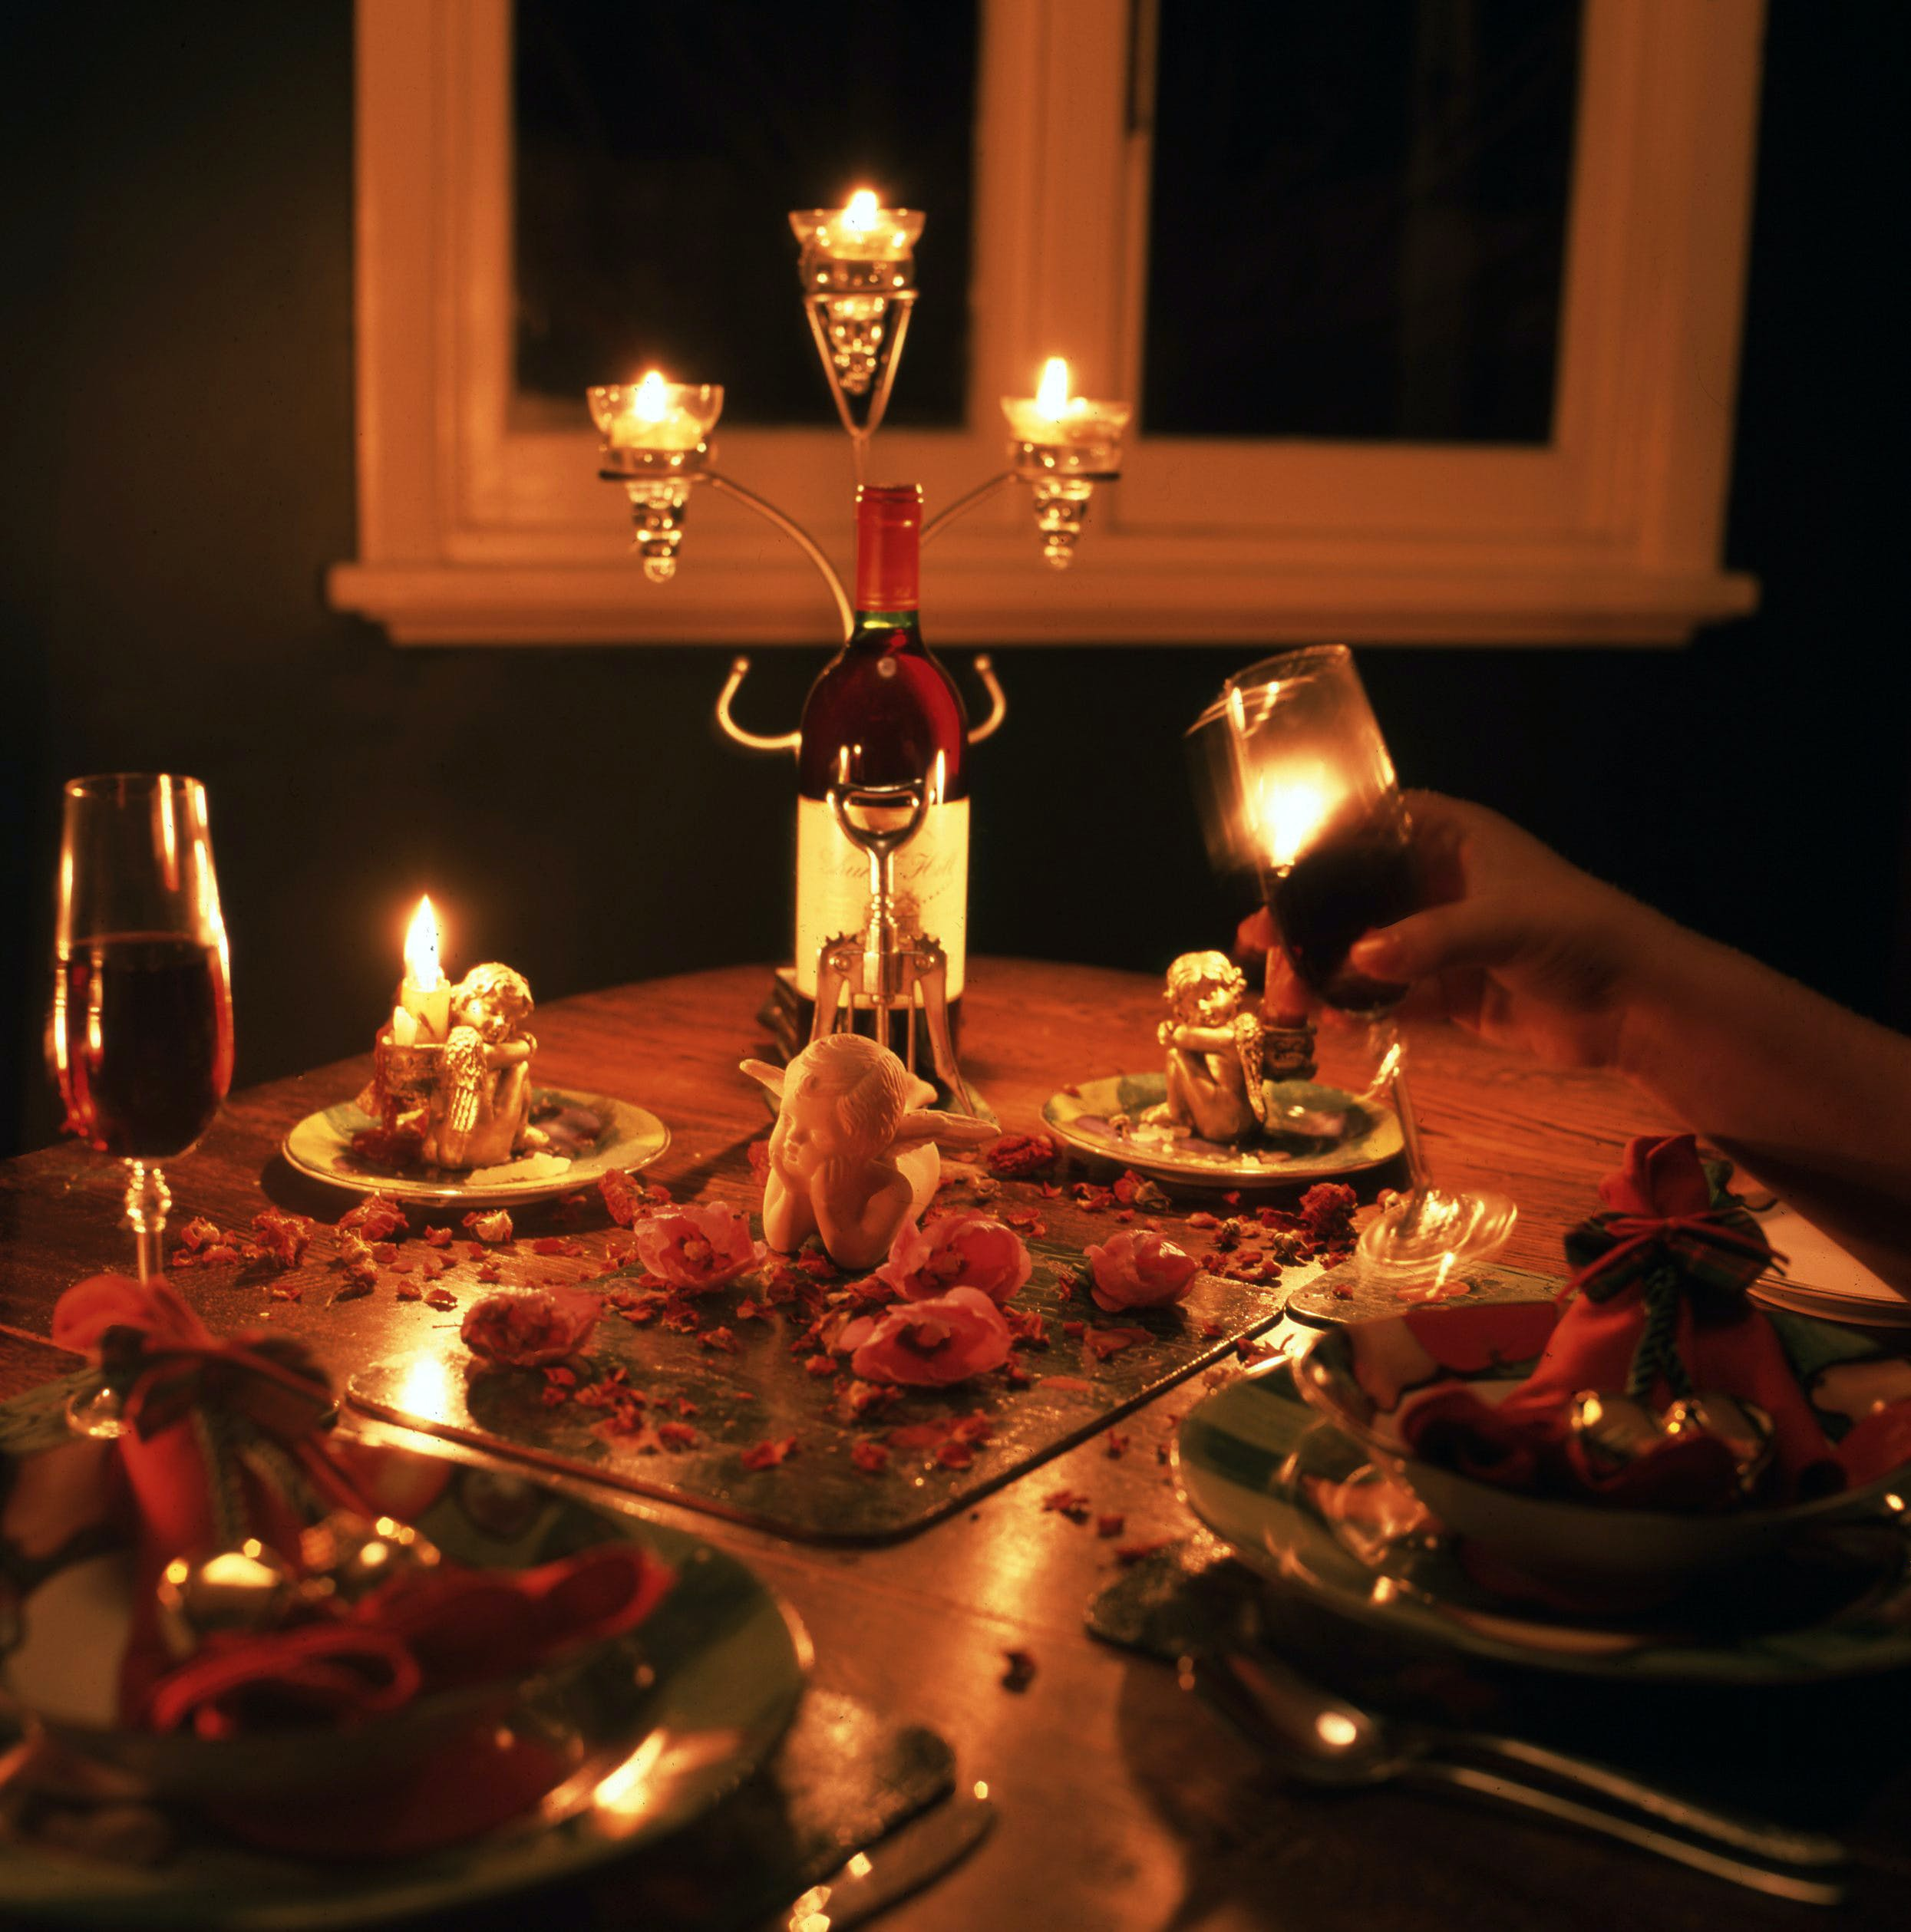 candlelight, dinner table, glass of wine